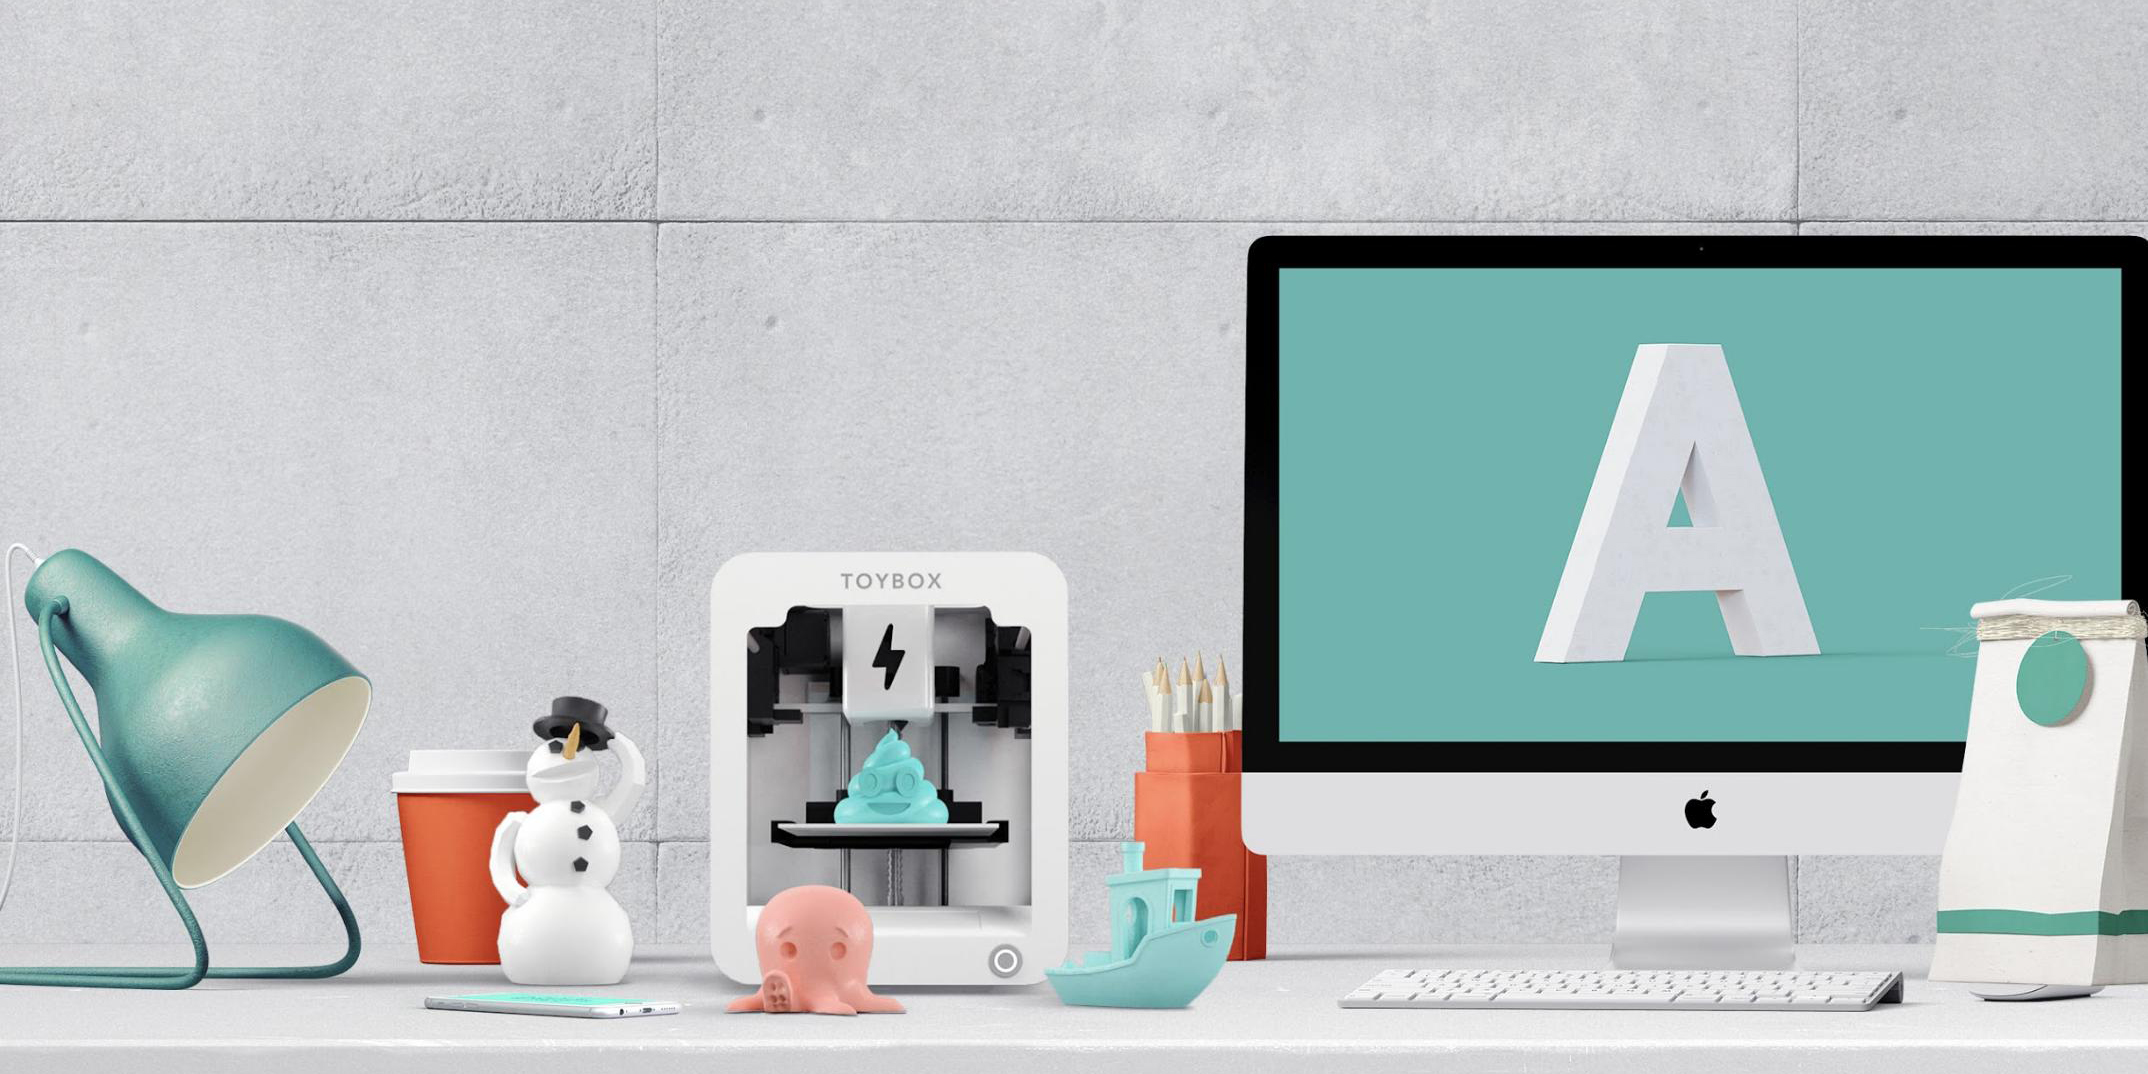 Toybox is an affordable iPhone & Android-driven 3D printer designed for kids